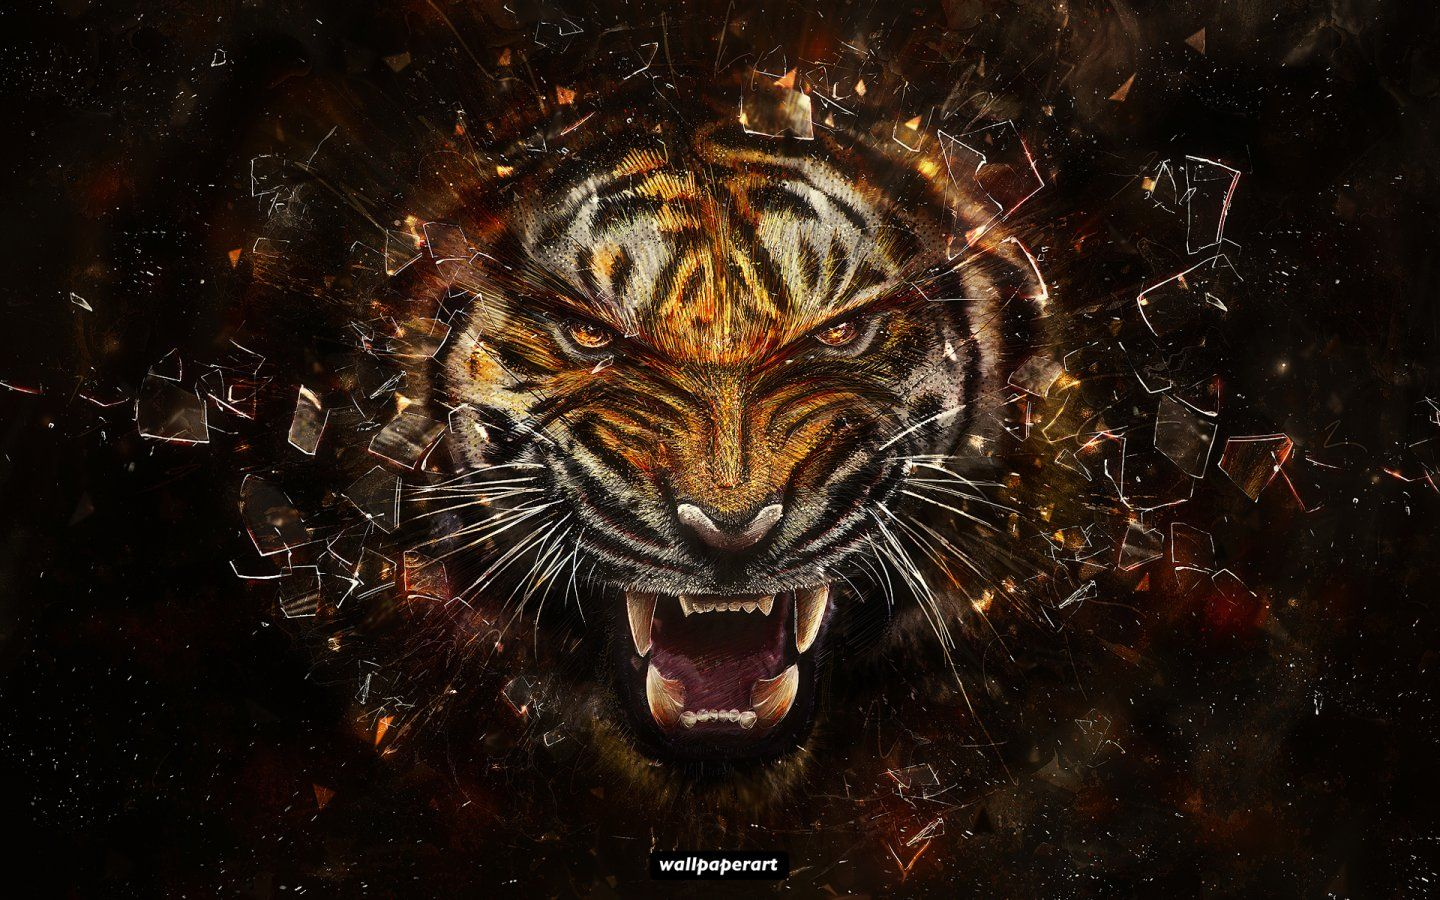 Fantasy Tiger Revenge Nature Nature Photography Wallpapers Backgrounds Tiger Wallpaper Tiger Images Steampunk Wallpaper